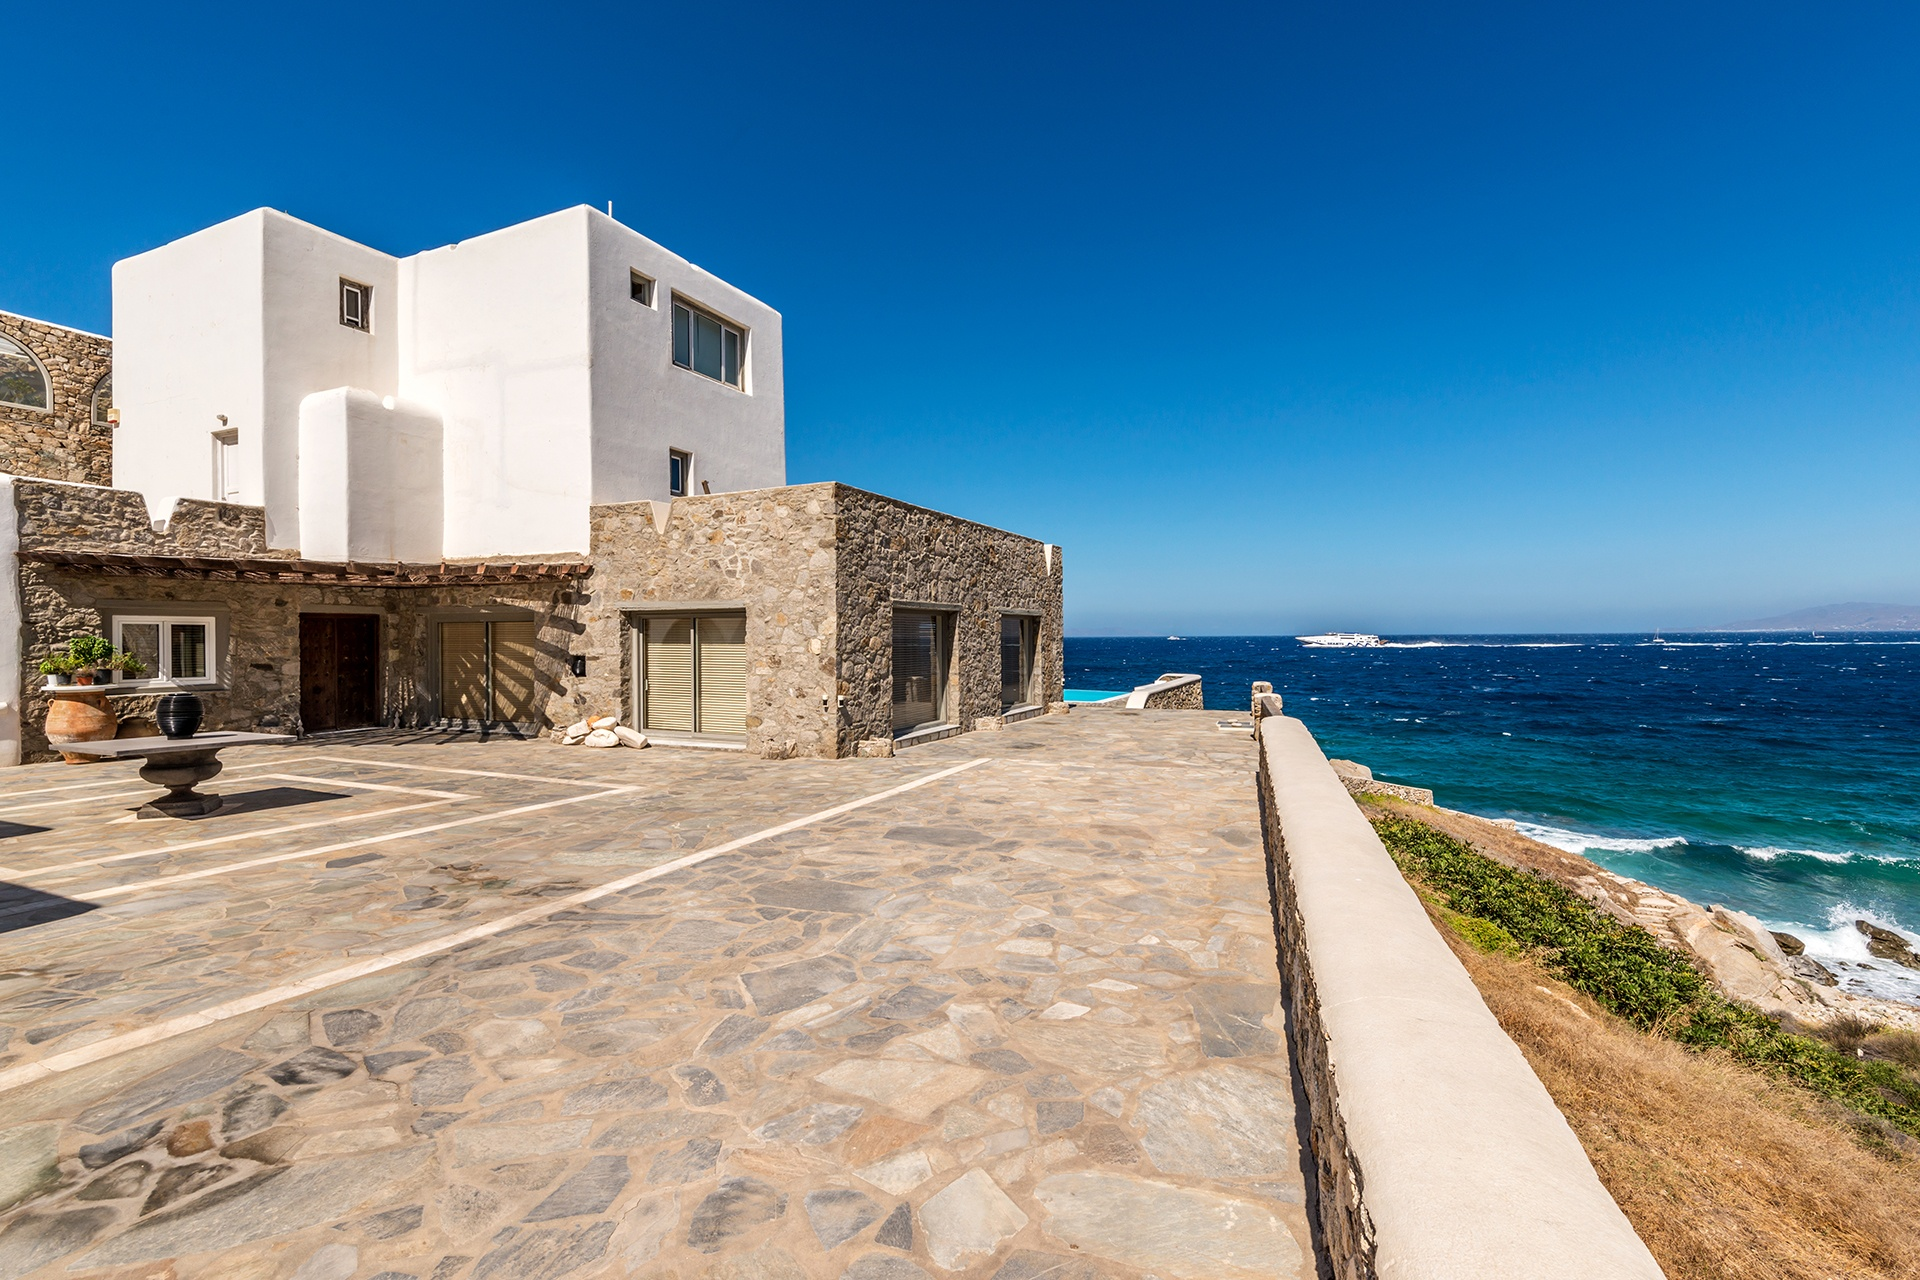 Outside, a vast sunny terrace leads down to the secluded cove and beach.